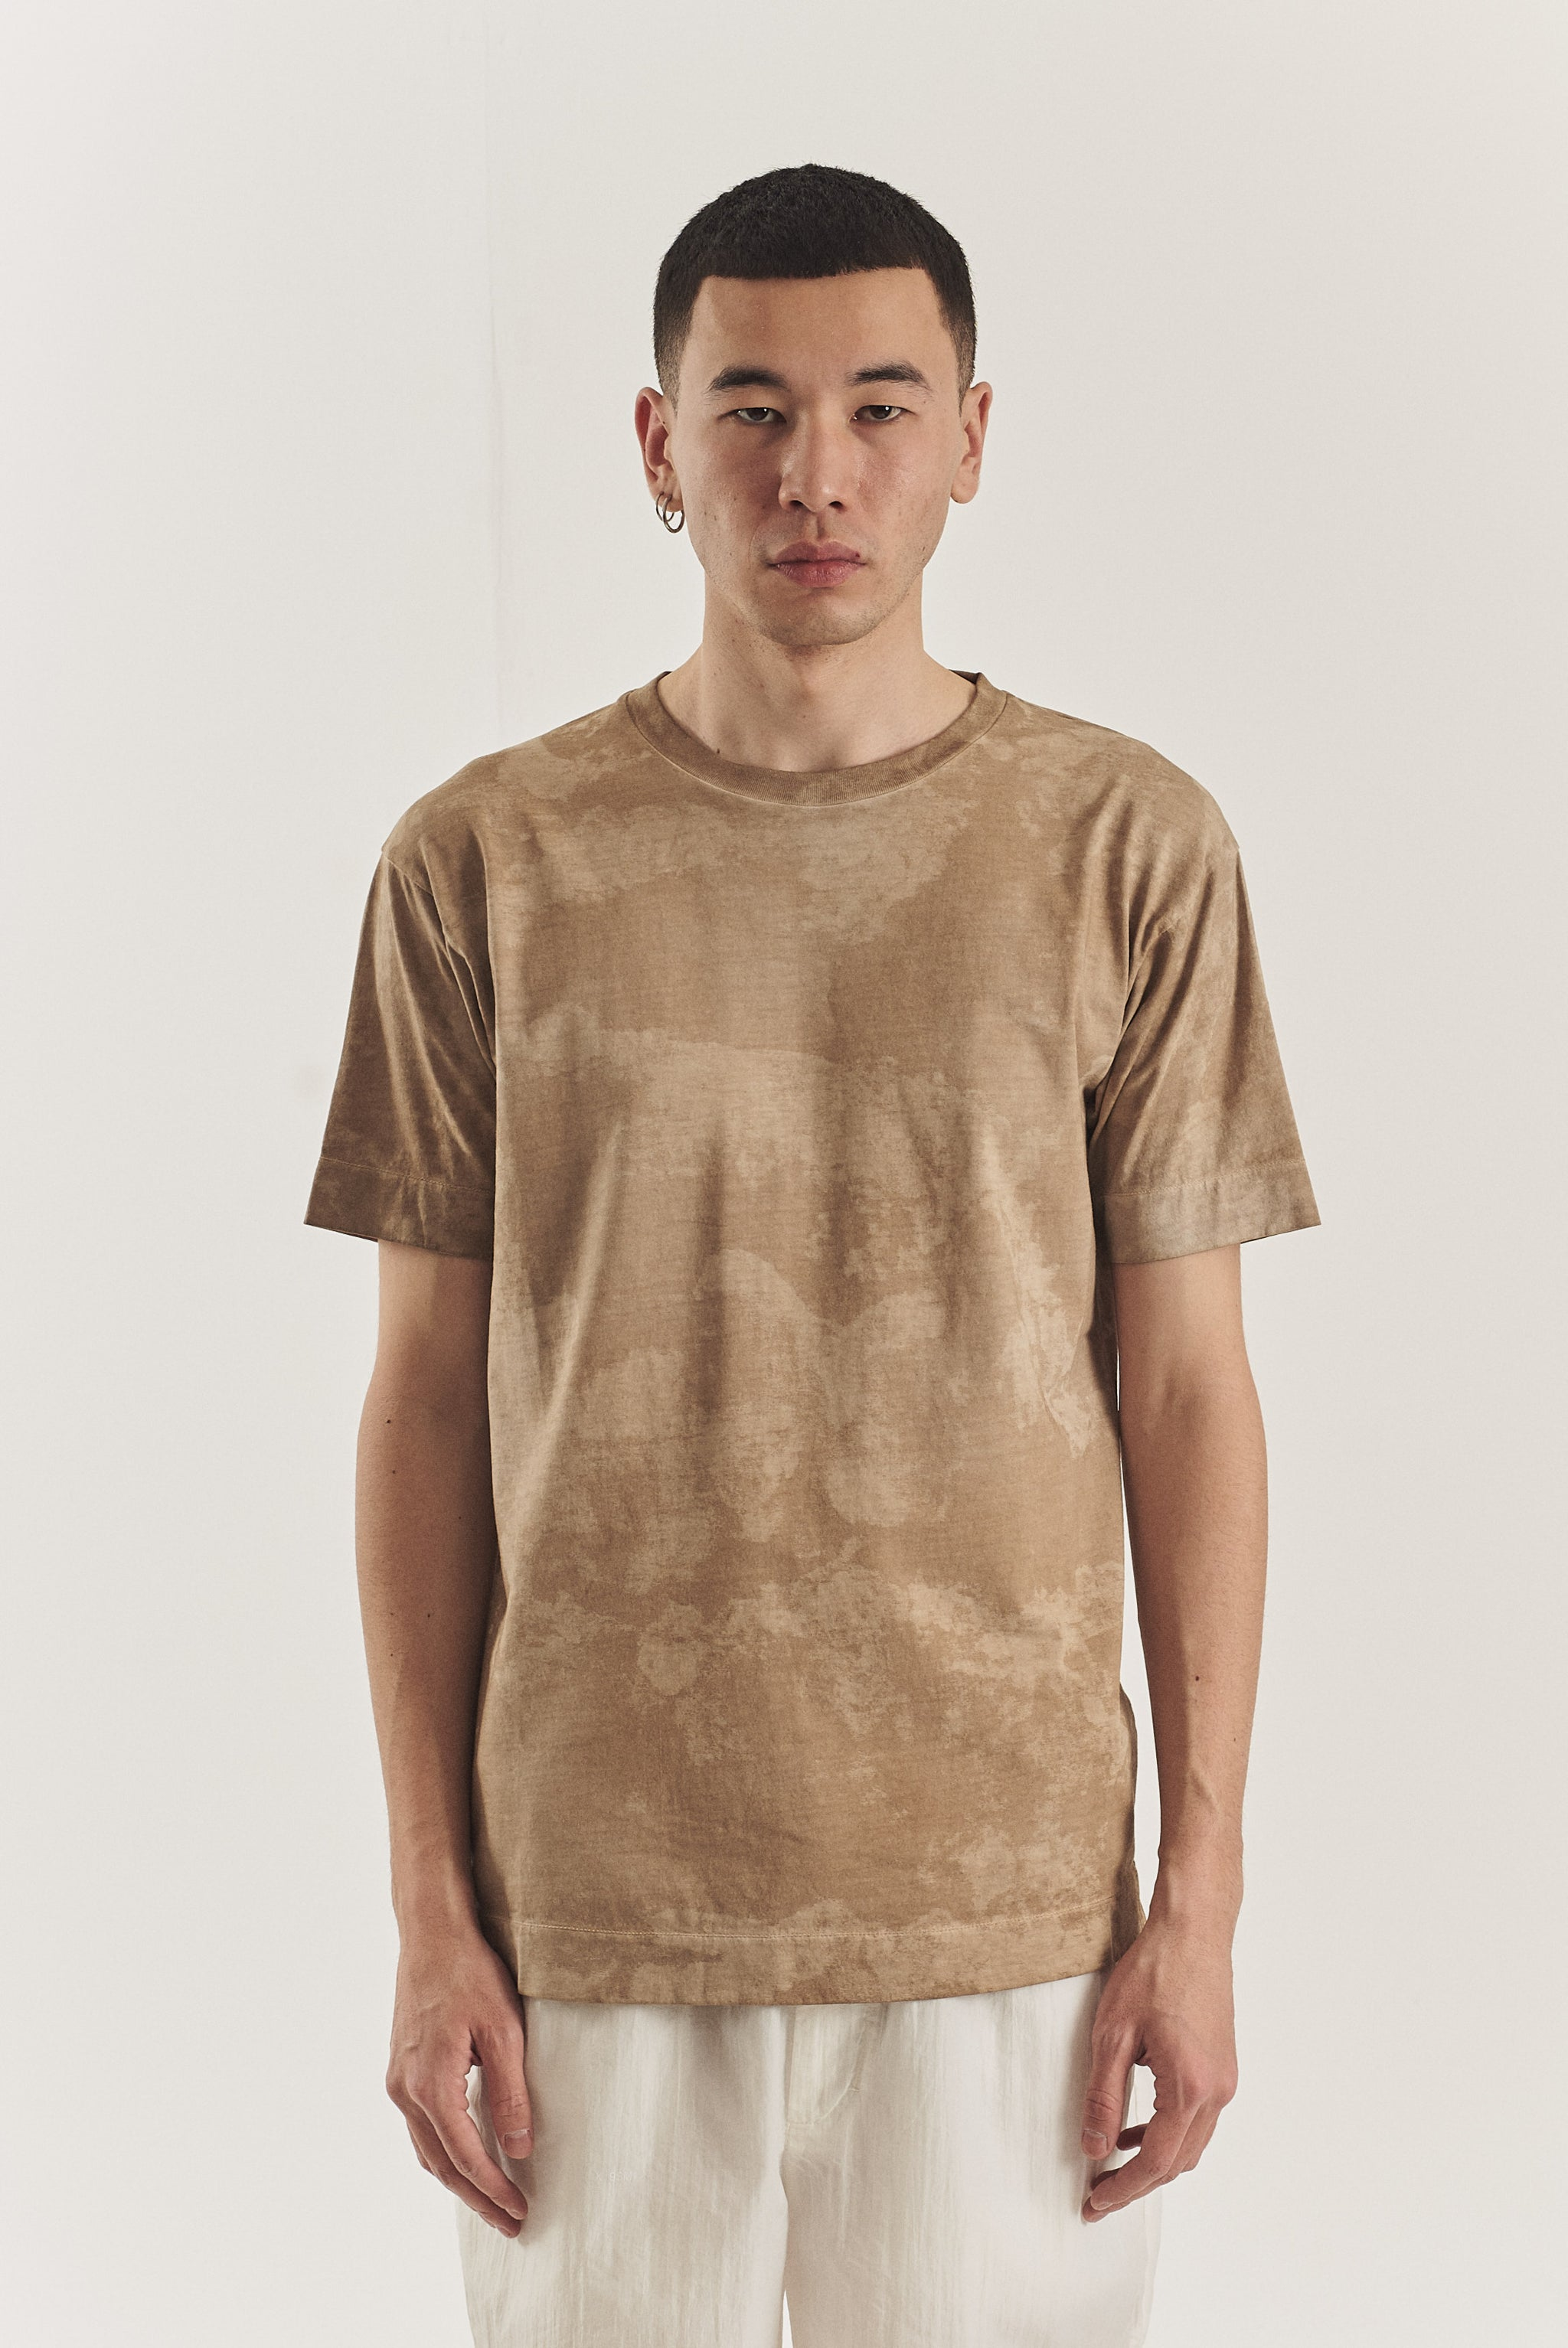 Camo Collection t-shirt